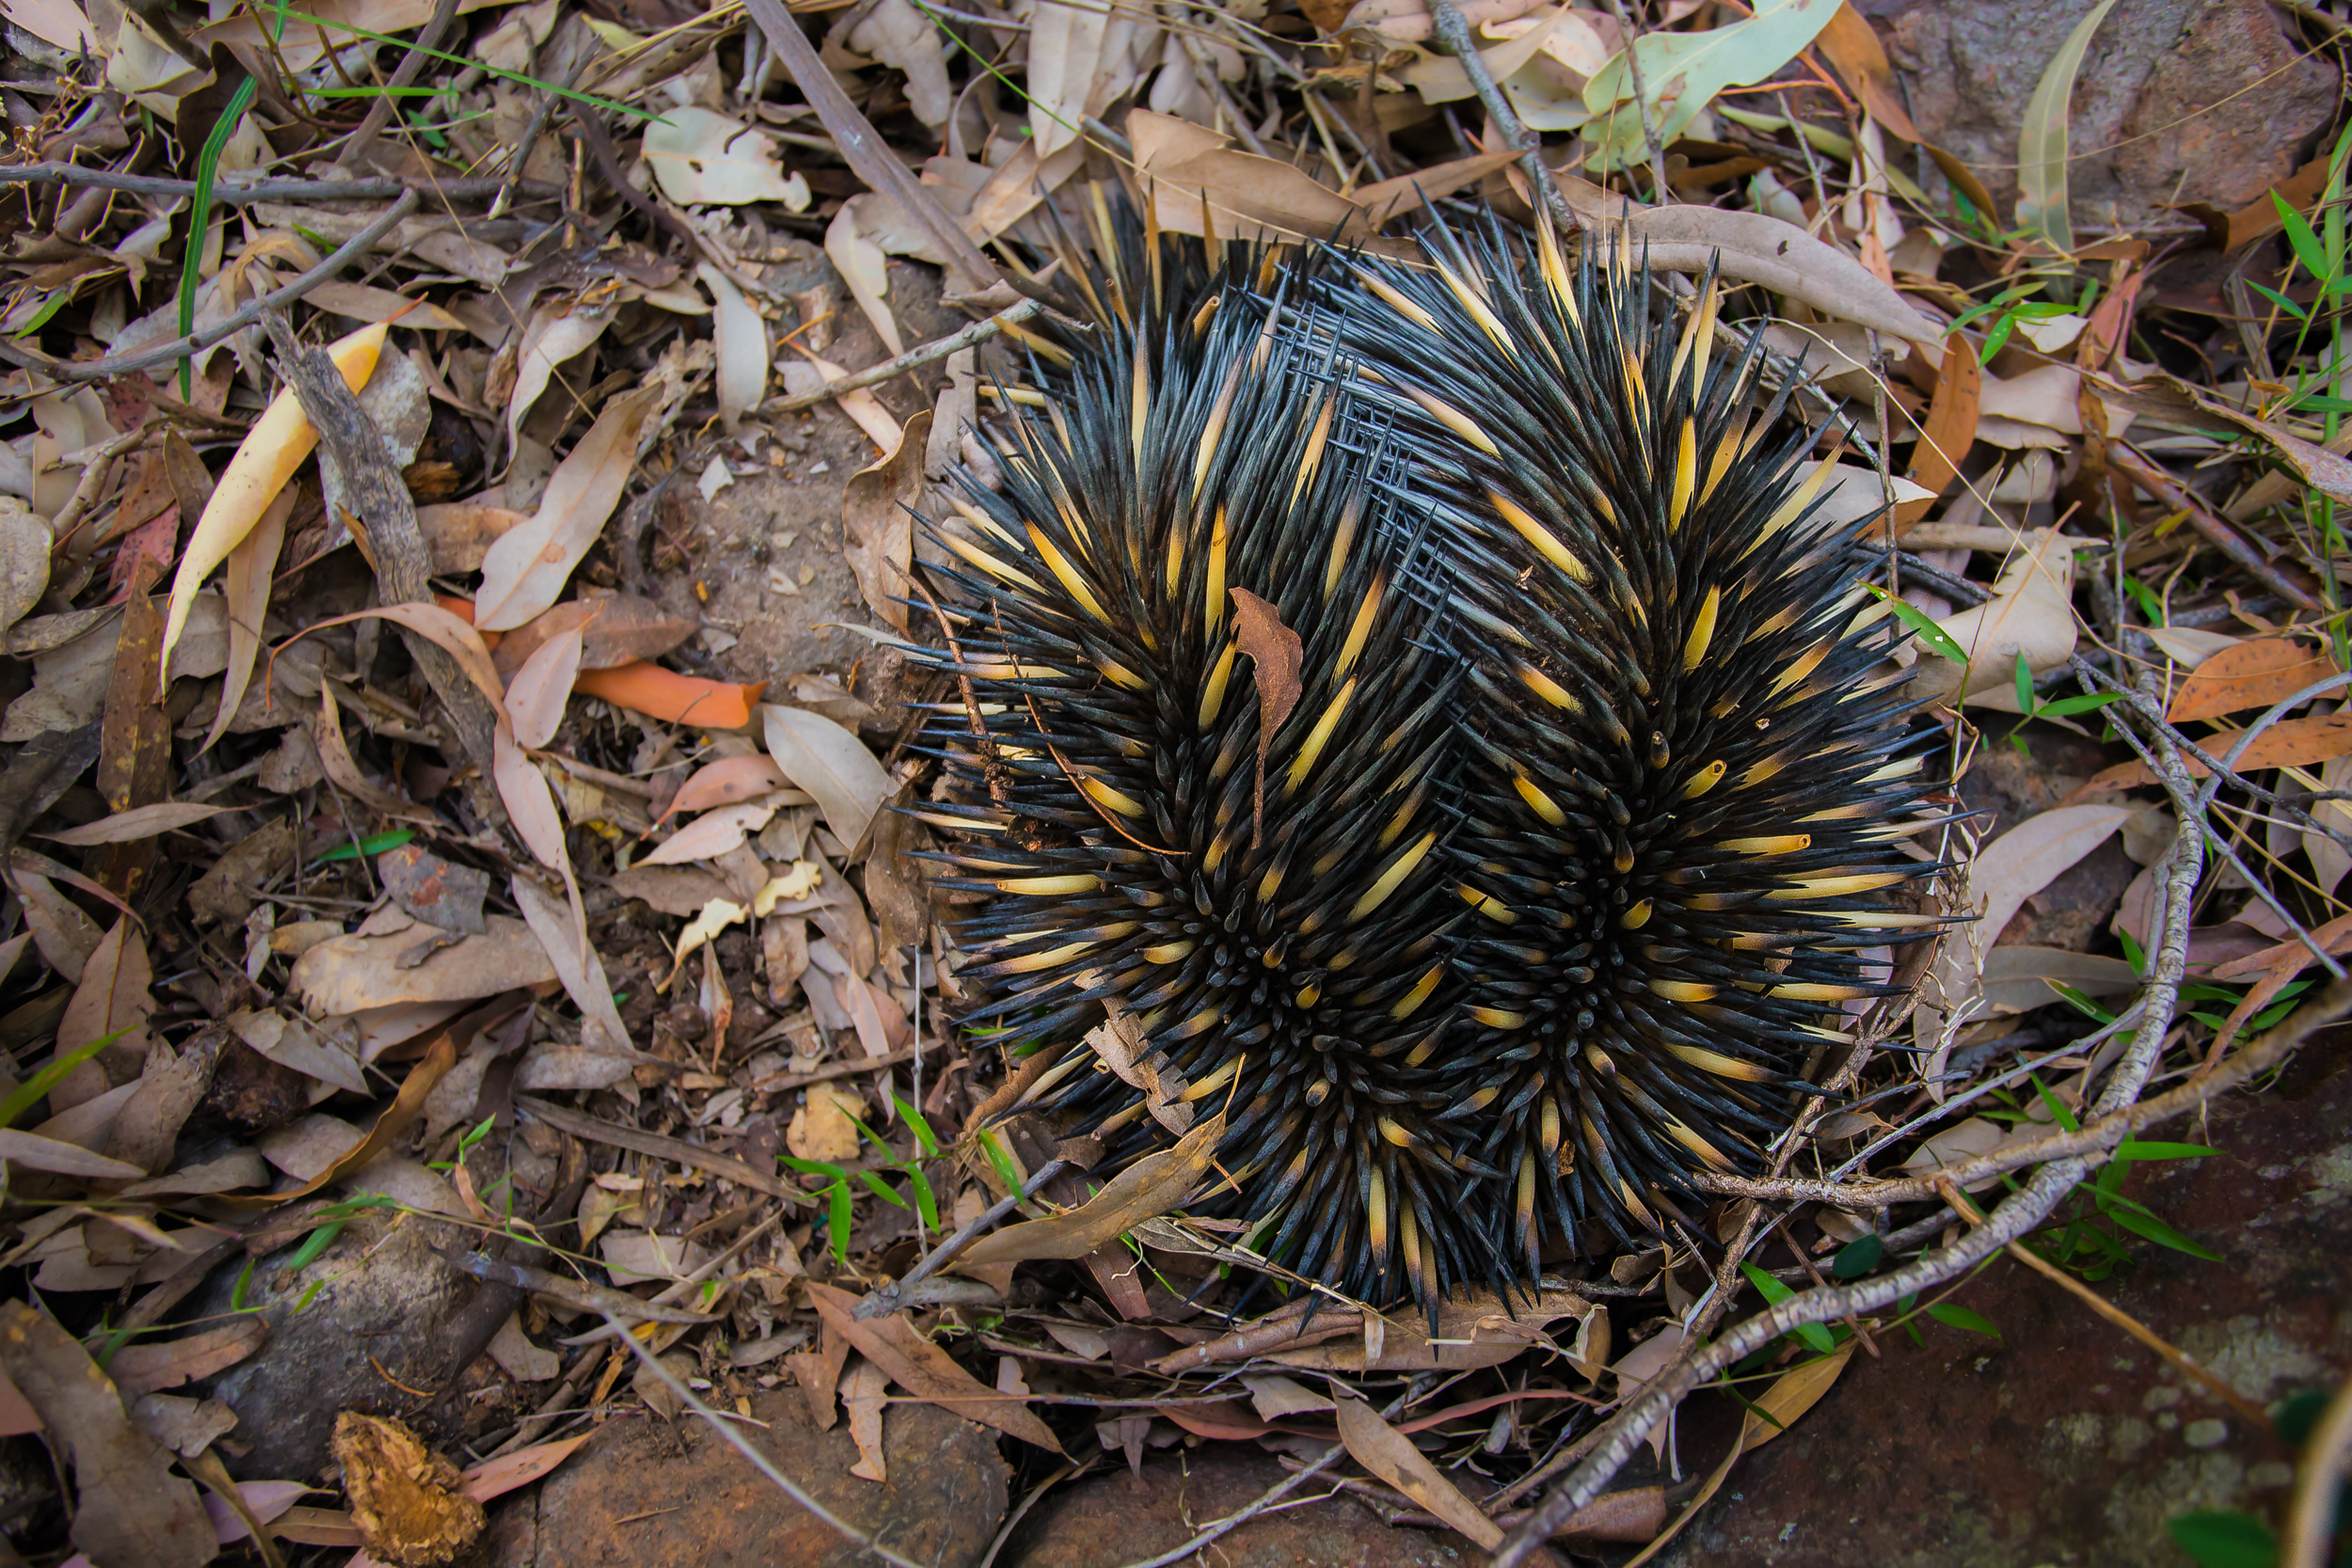 Echidna found in Waa Gorge.